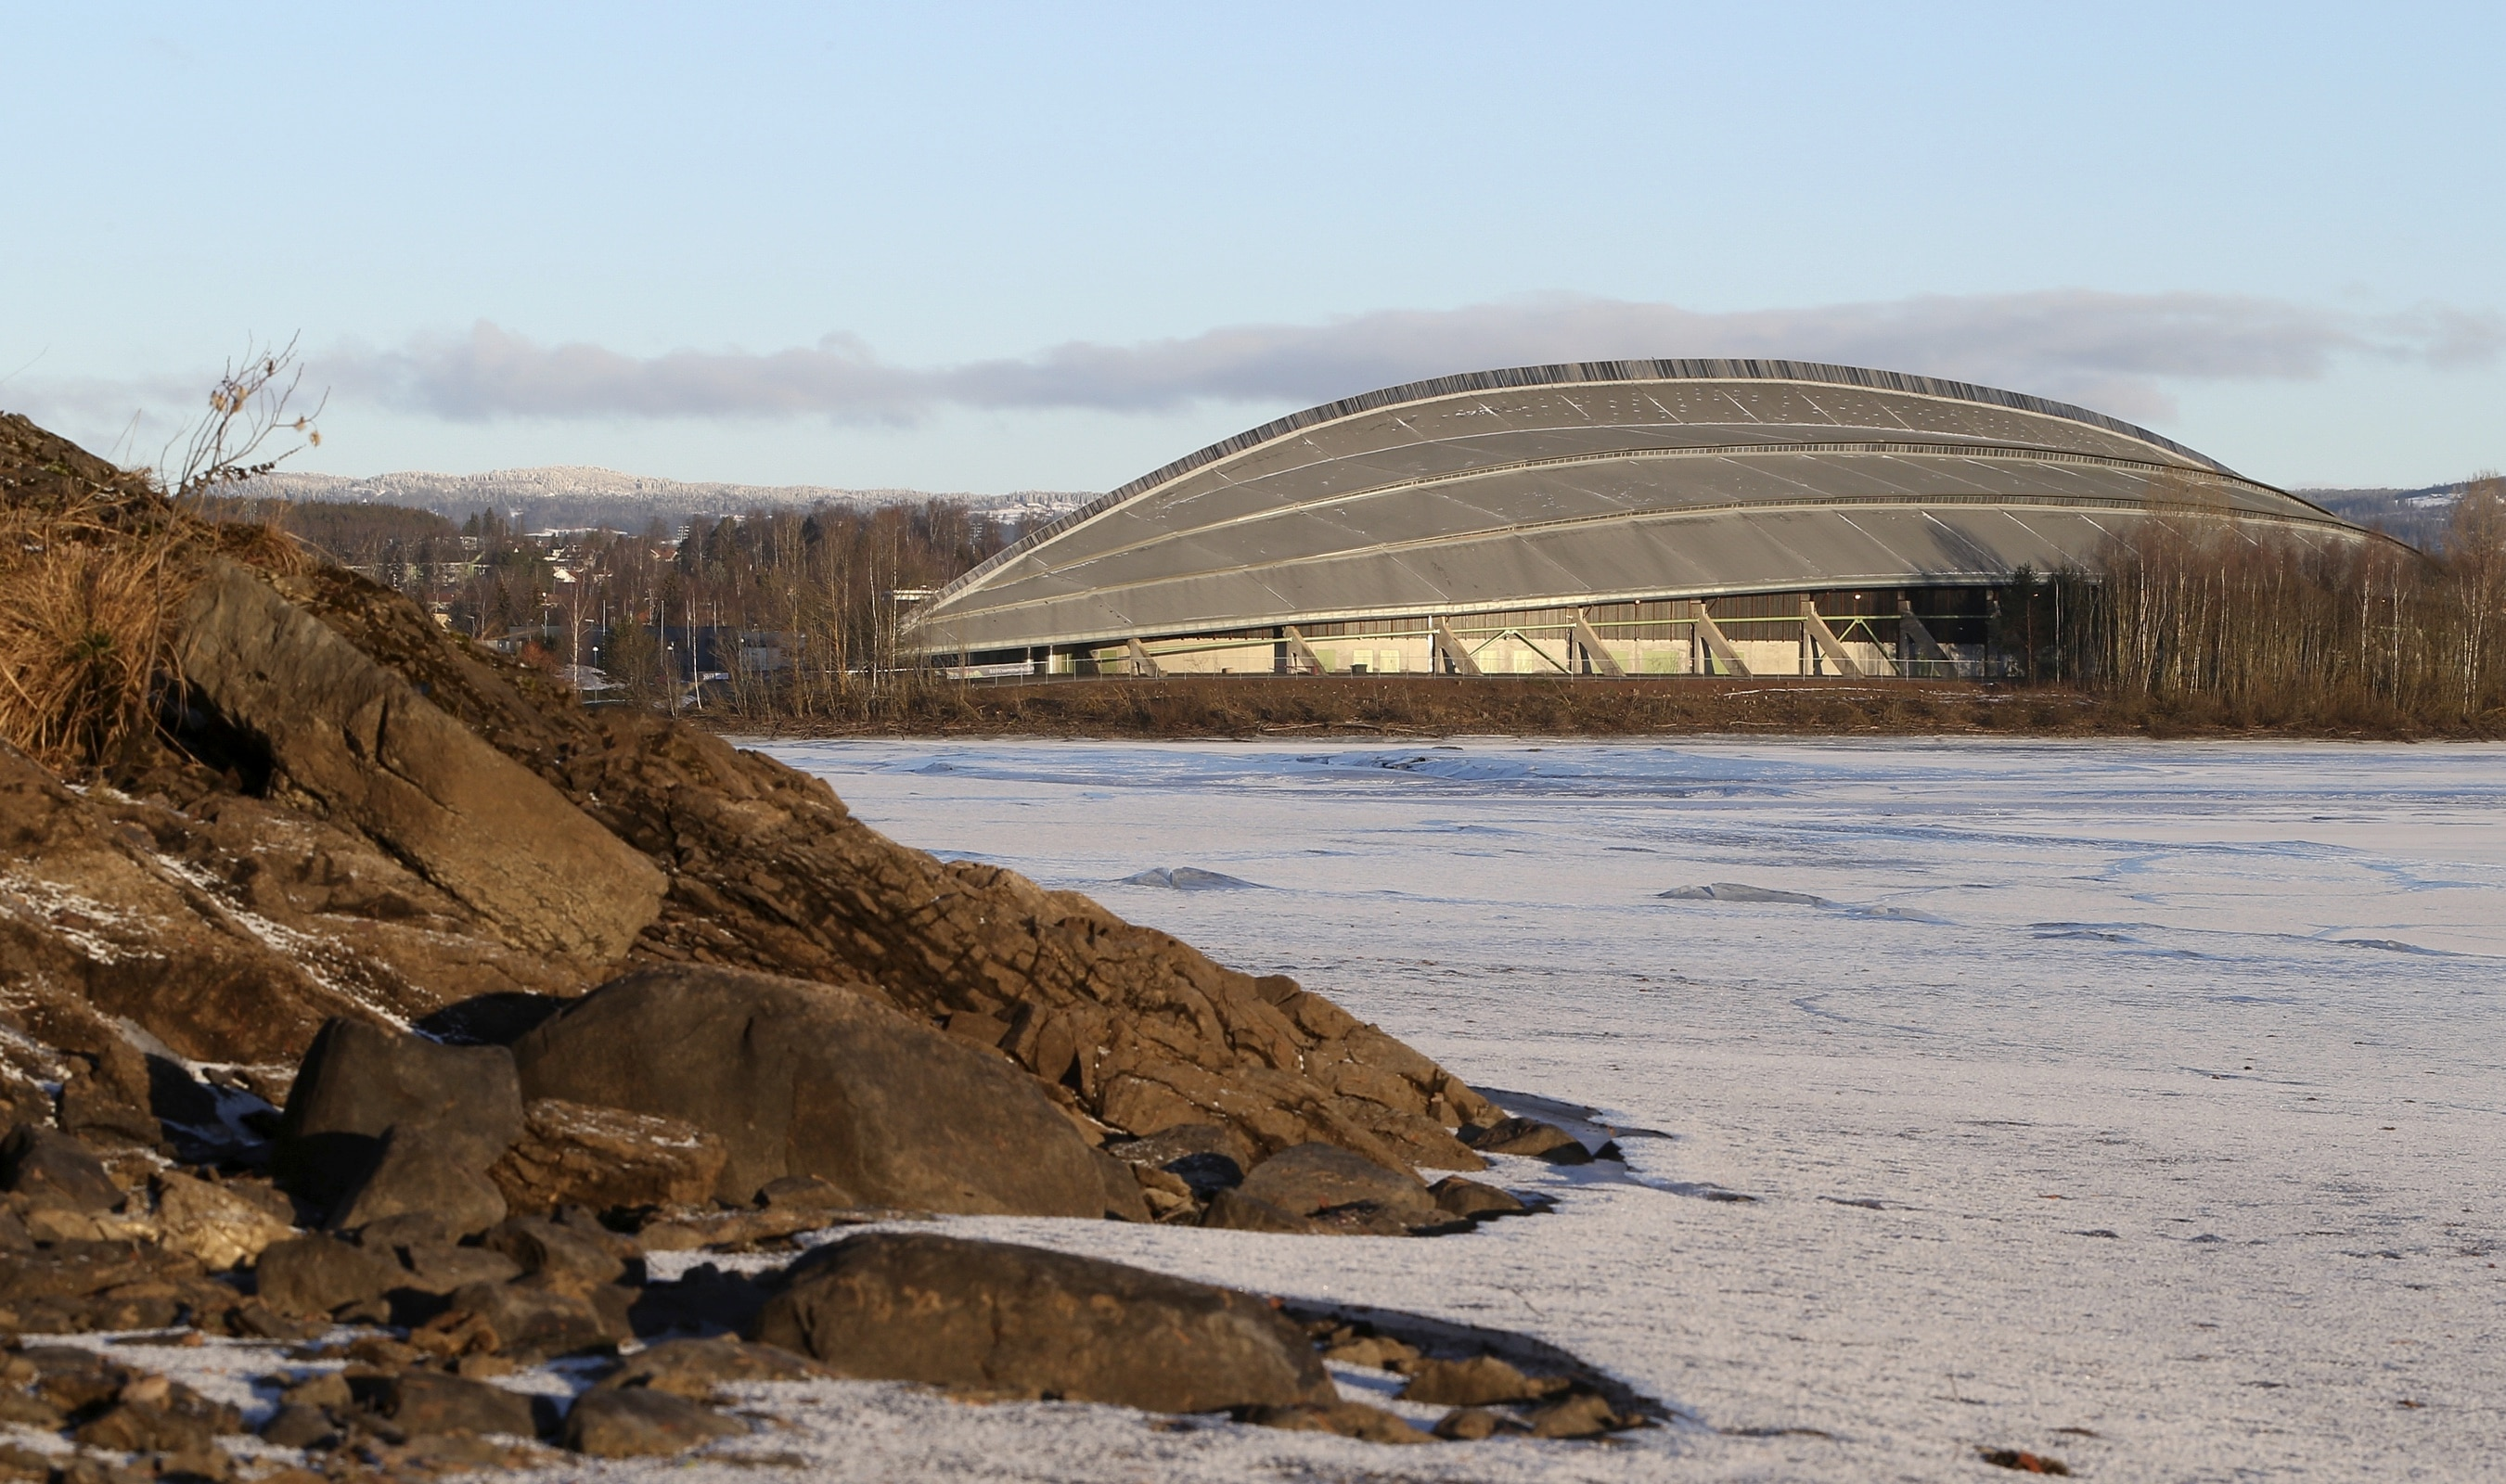 Hamar Olympic Hall